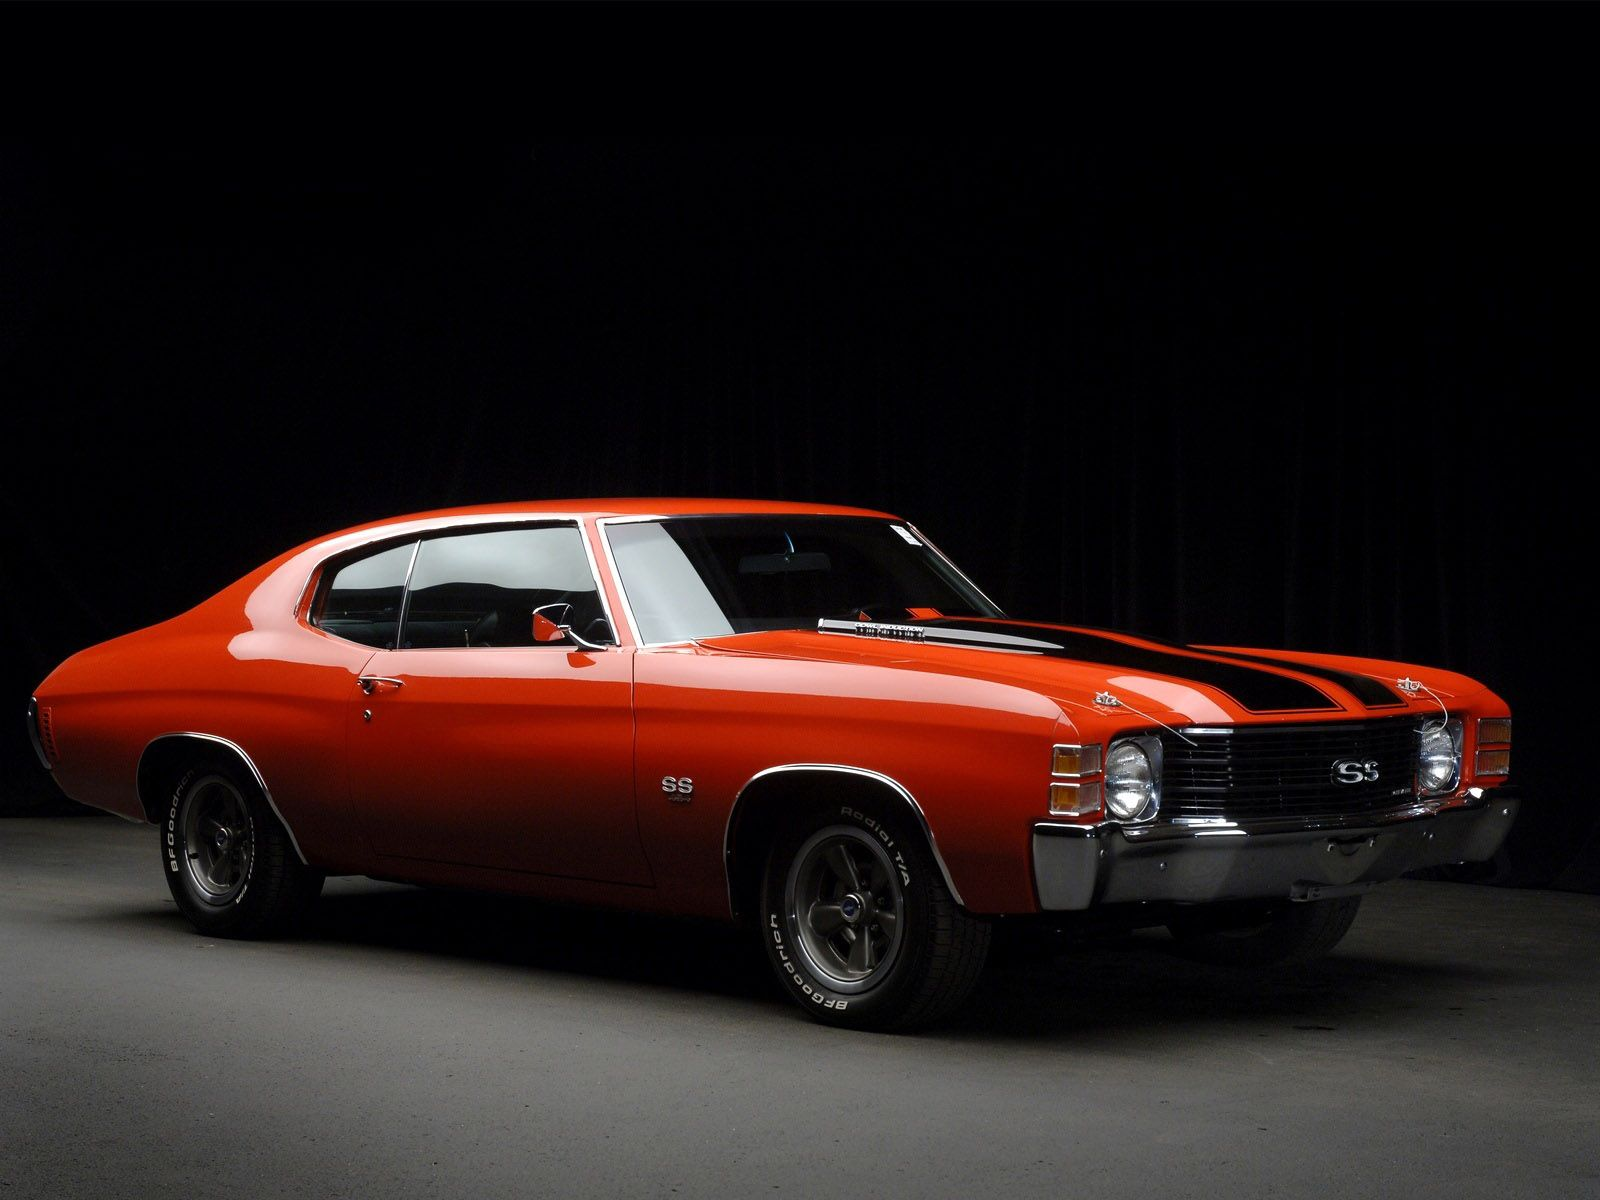 Pin by ralph martinez on Muscle Cars | Pinterest ...